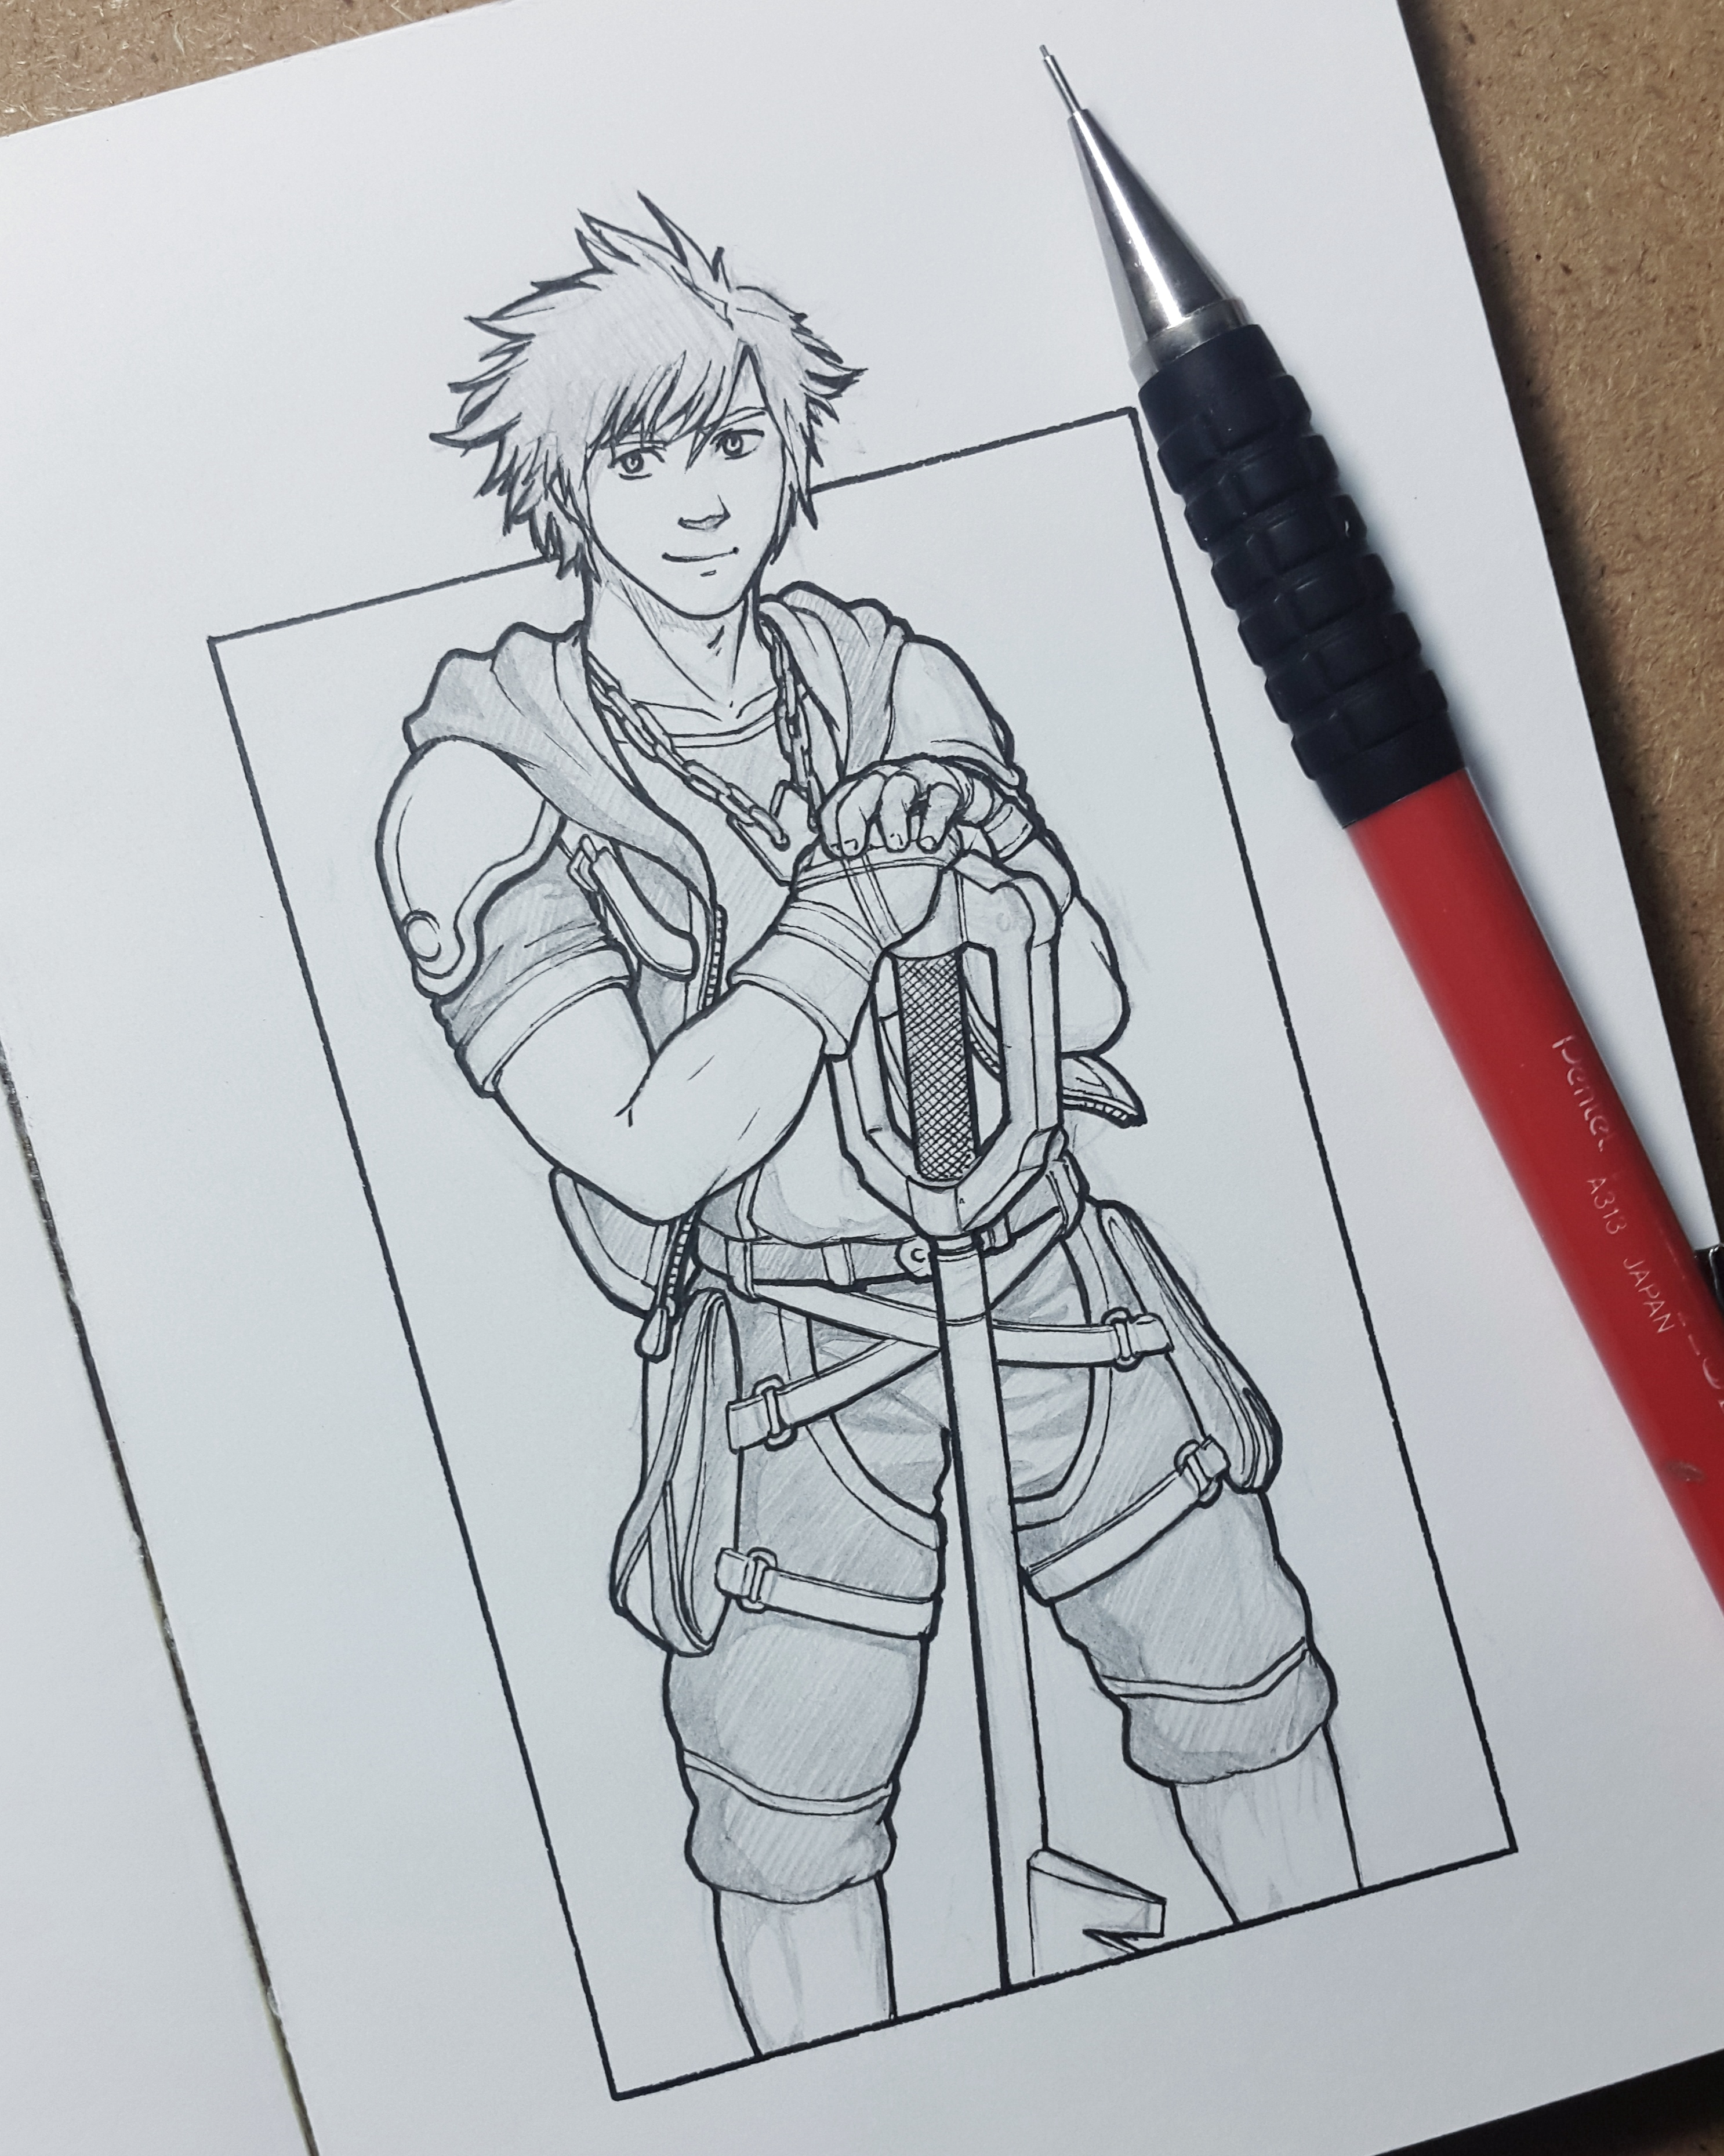 Sora from Kingdom Hearts the grow up version